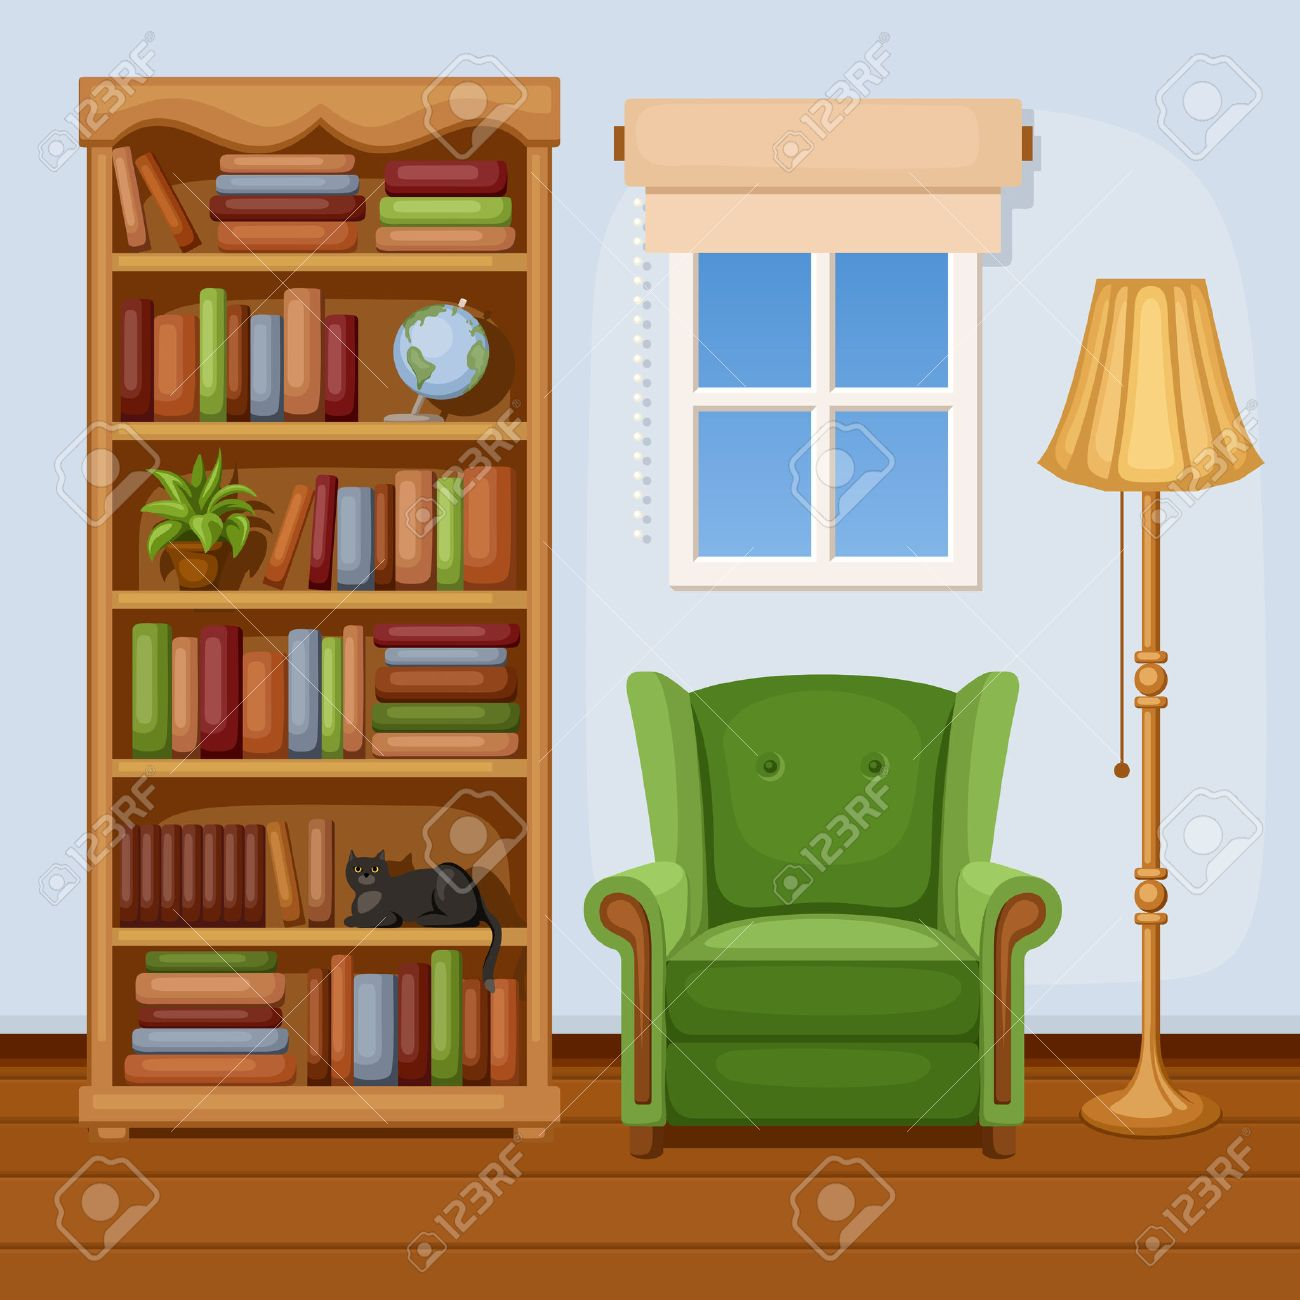 Interior wooden shelves free vector - Bookcase Room Interior With Bookcase And Armchair Vector Illustration